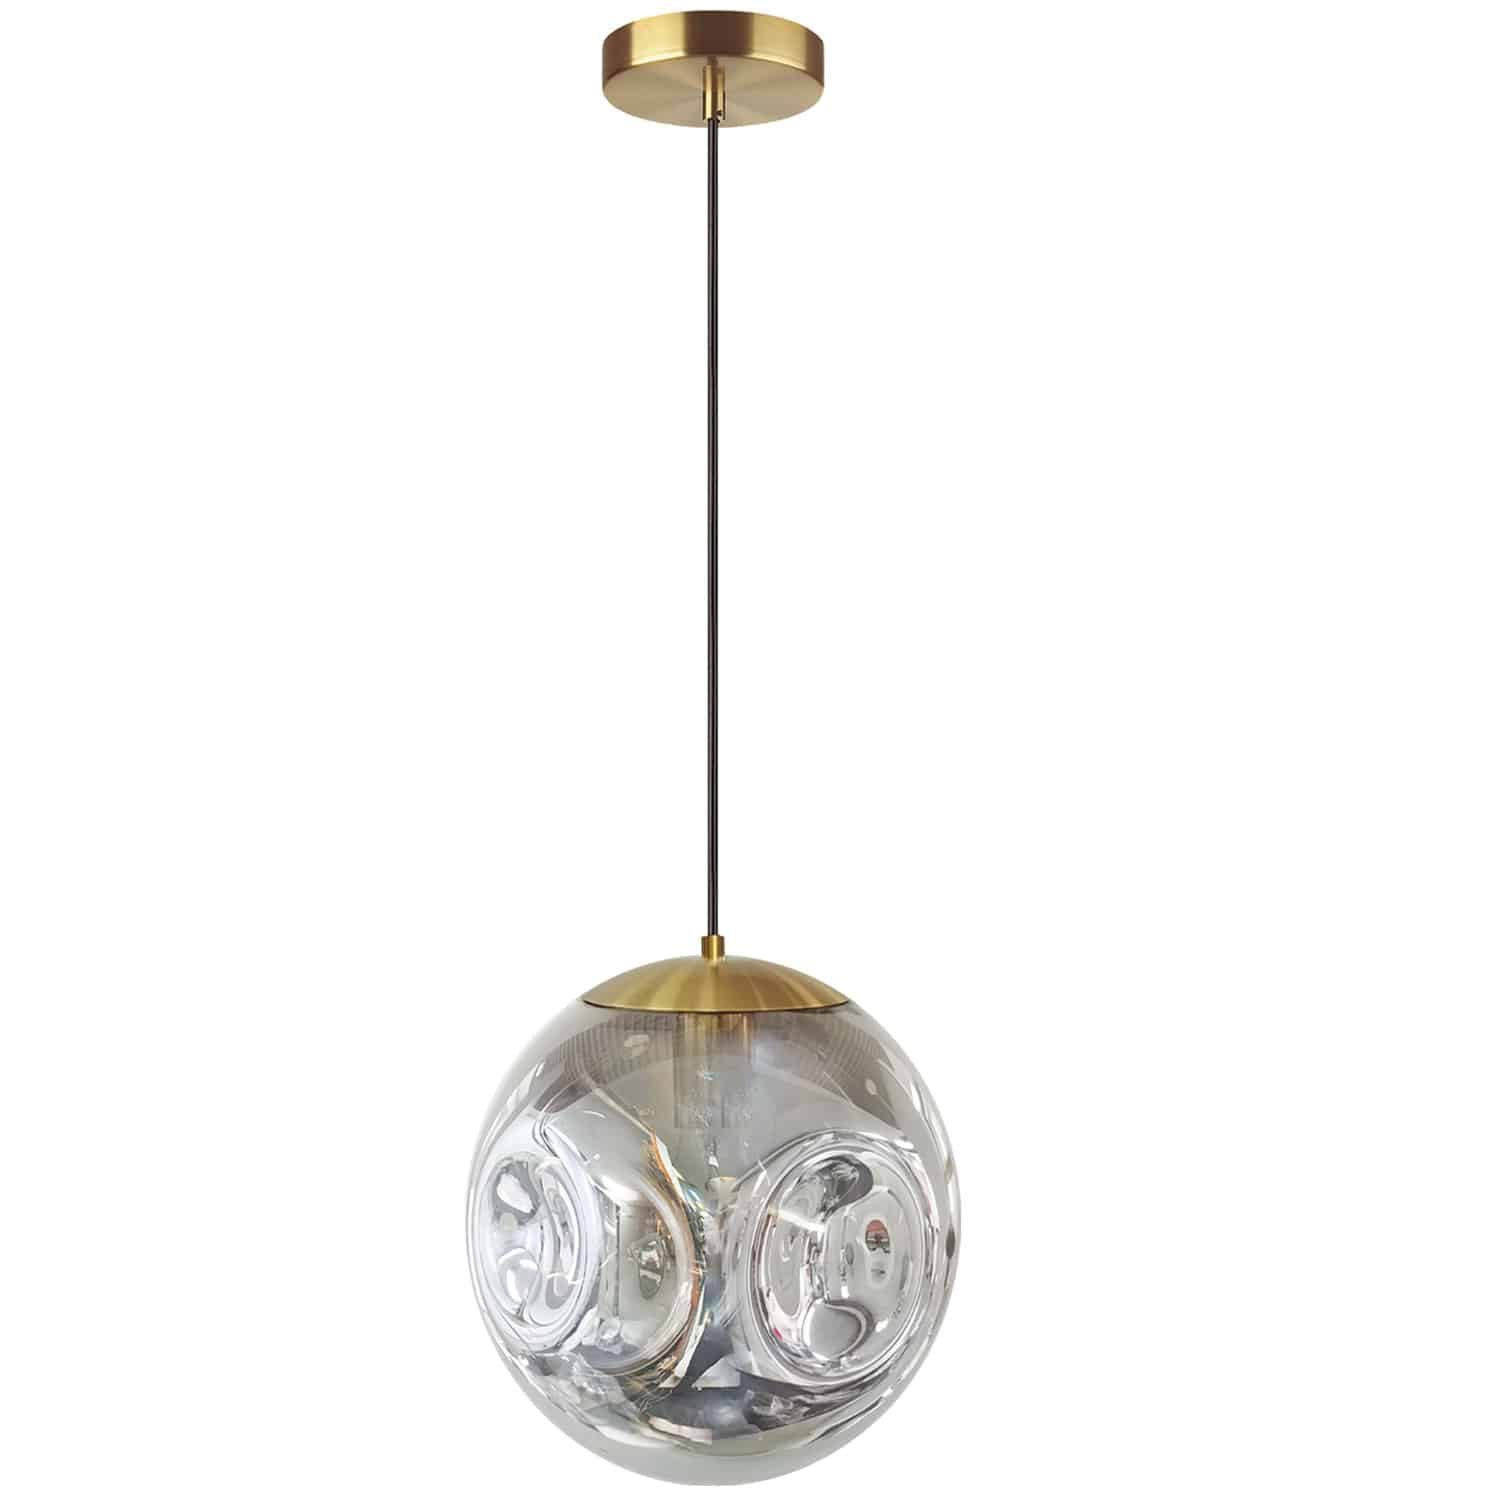 1 Light Incandescent Pendant, Aged Brass Finish with Smoked Glass